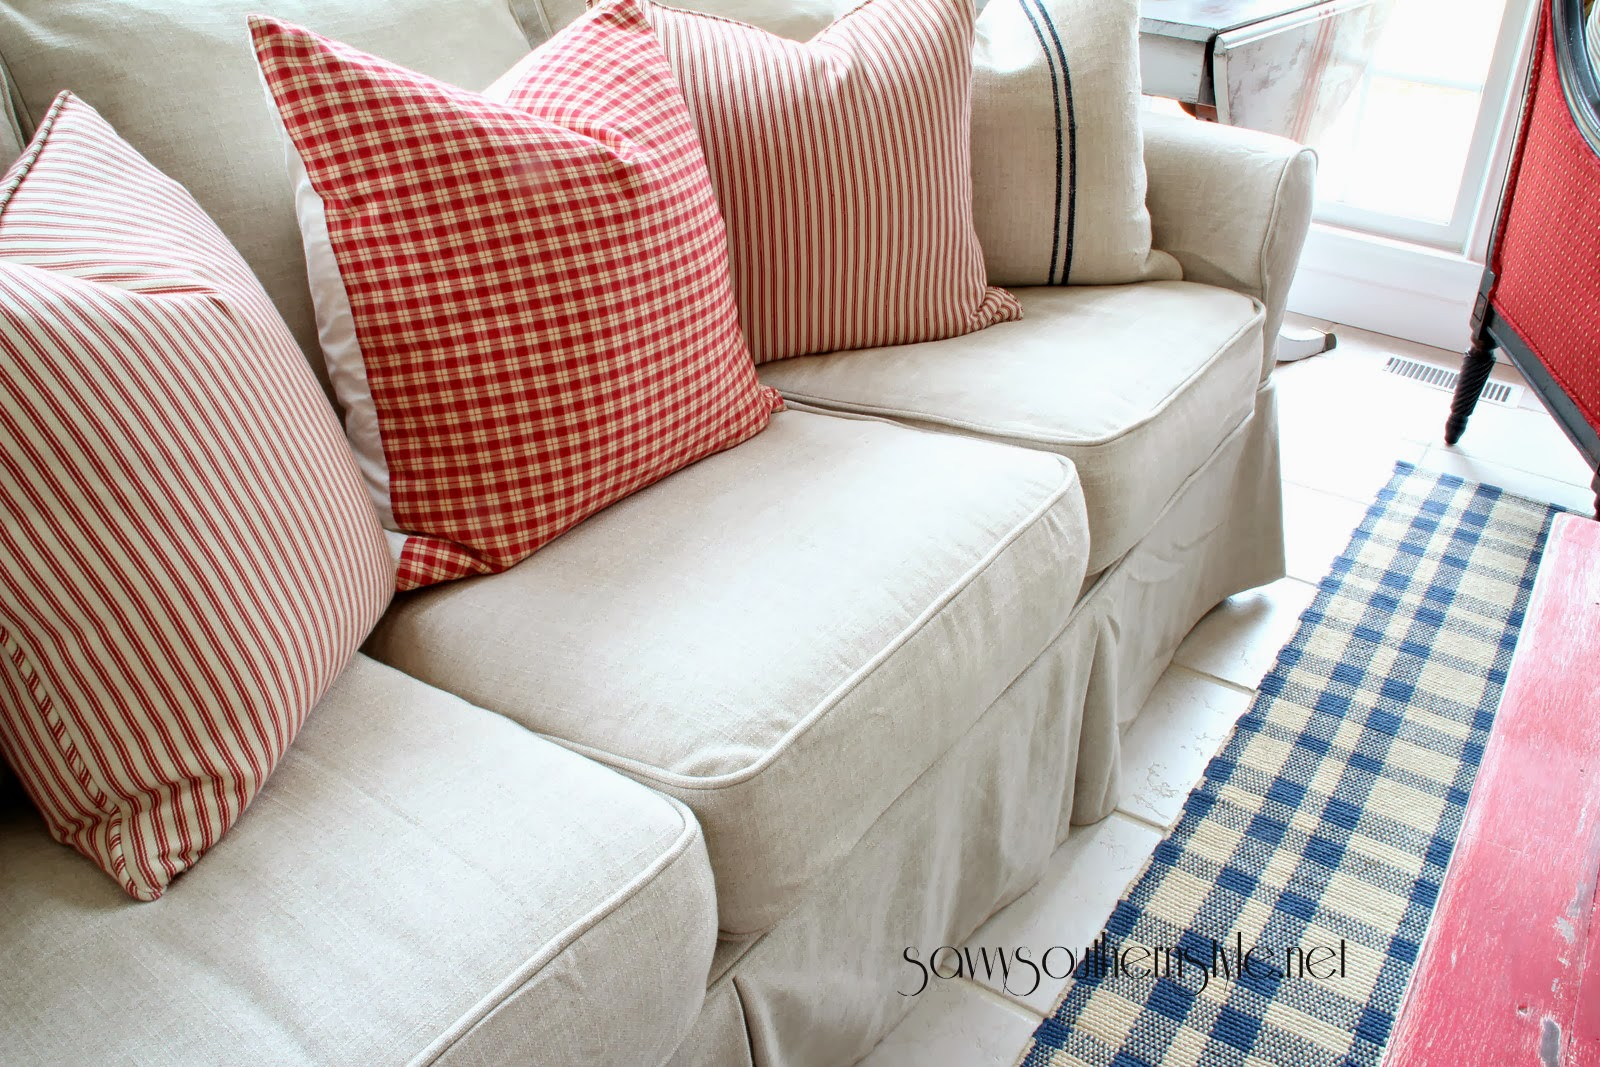 Savvysouthernstyle PB Basic sofa in Kino Natural